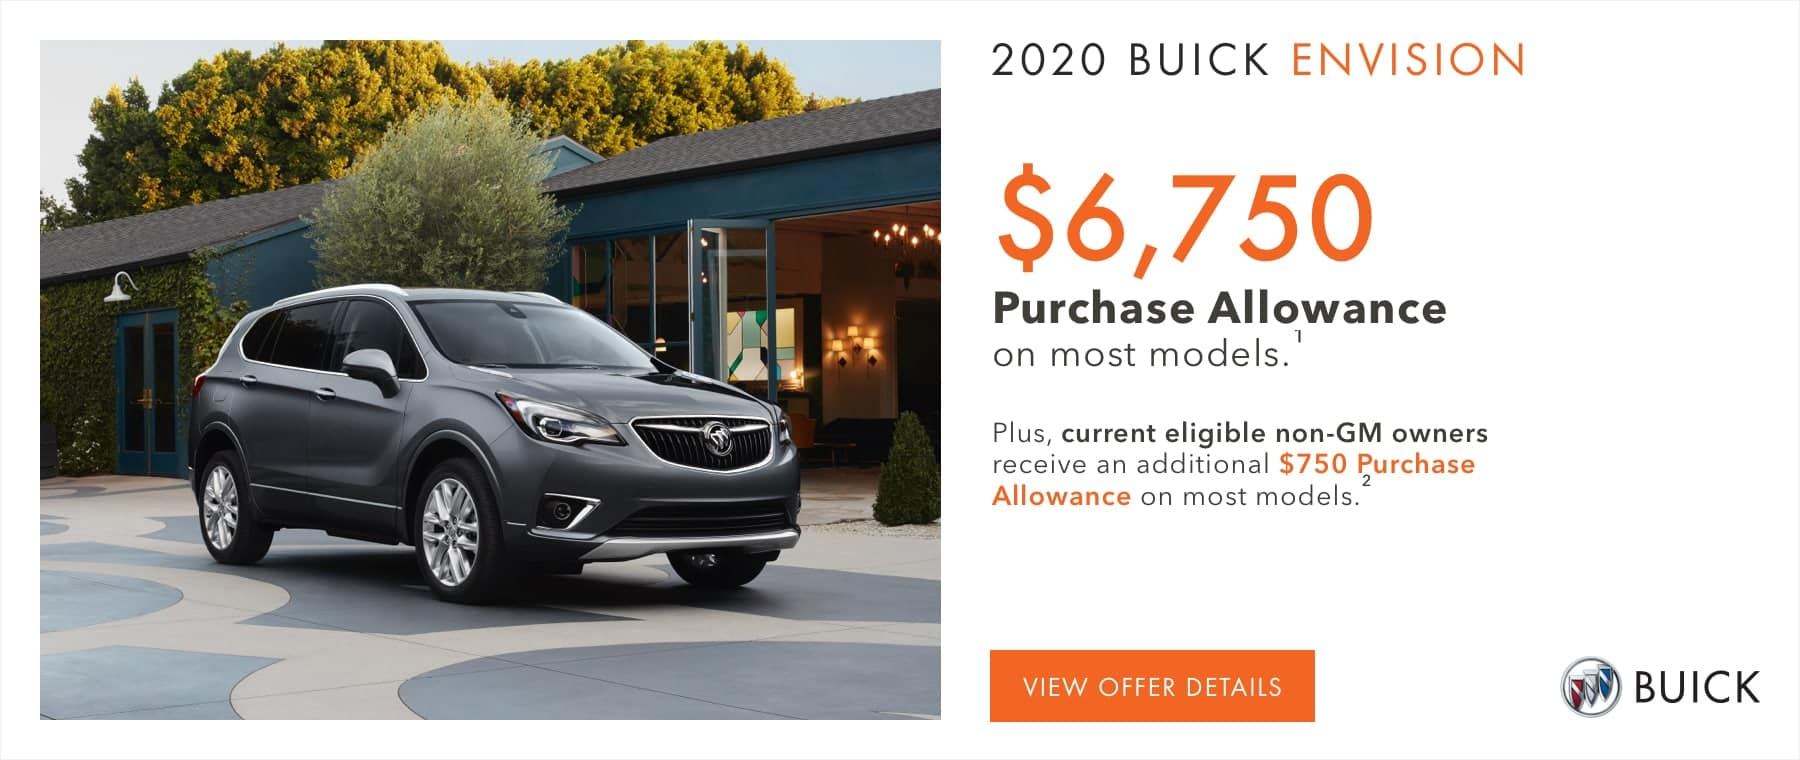 $6,750 Purchase Allowance on most models.1 Plus, current eligible non-GM owners receive an additional $750 Purchase Allowance on most models.